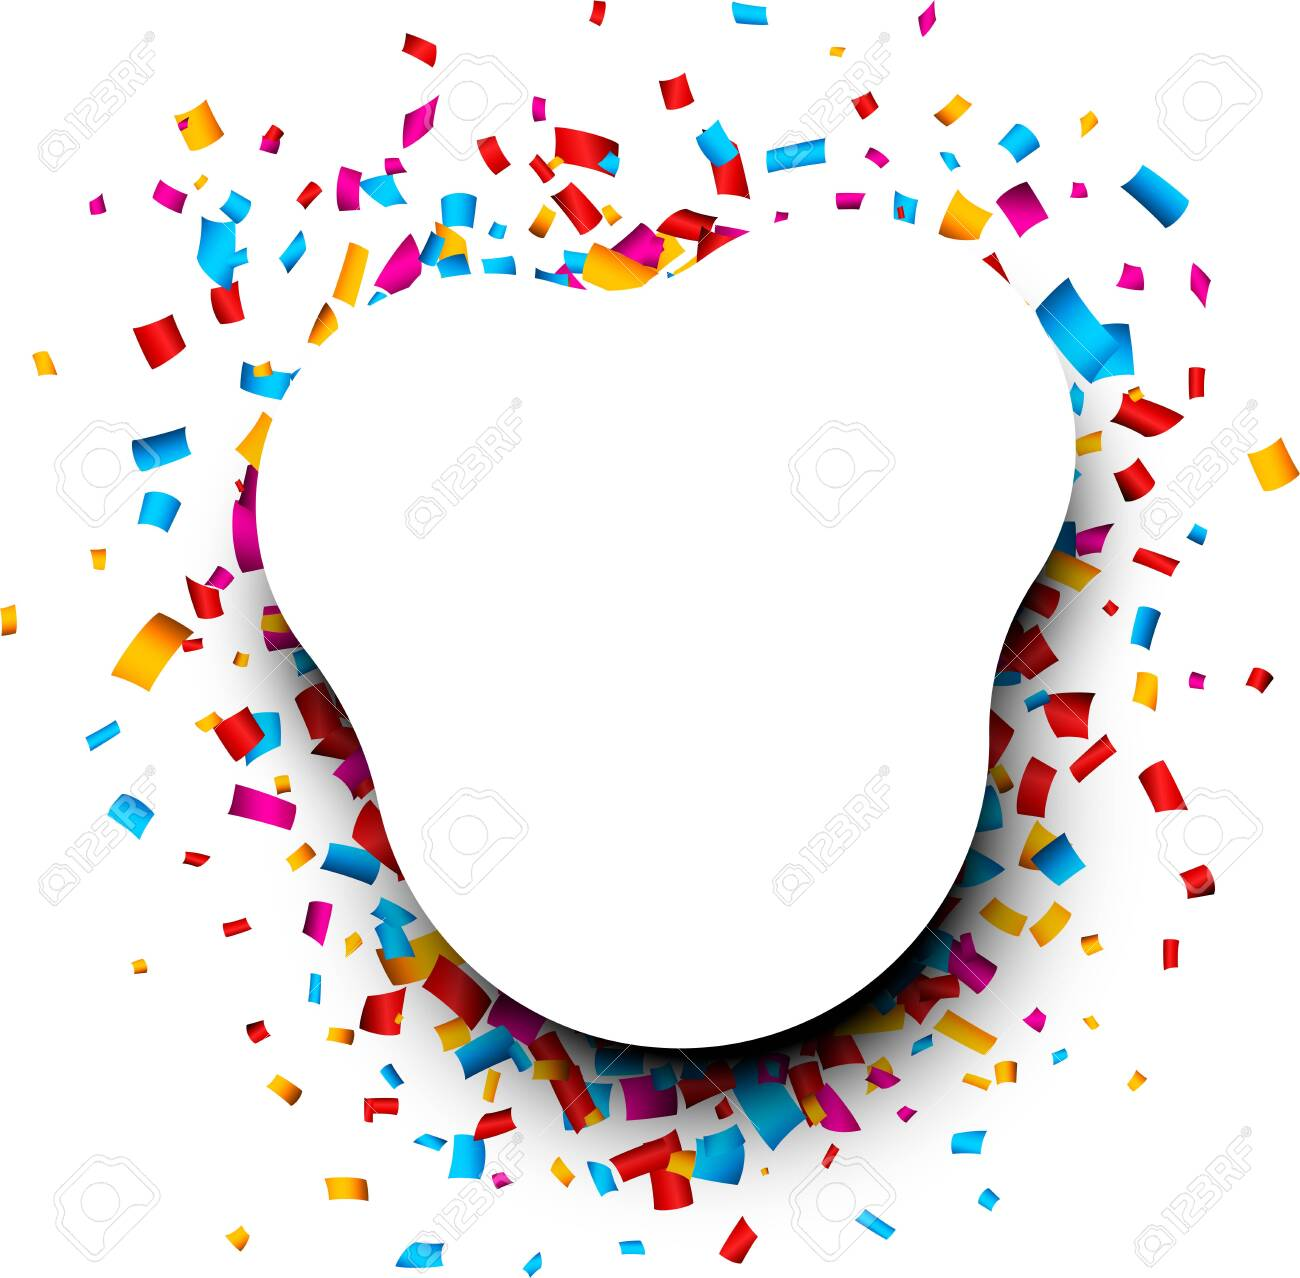 Festive white rounded background with colorful glossy confetti. Vector illustration. - 135178836